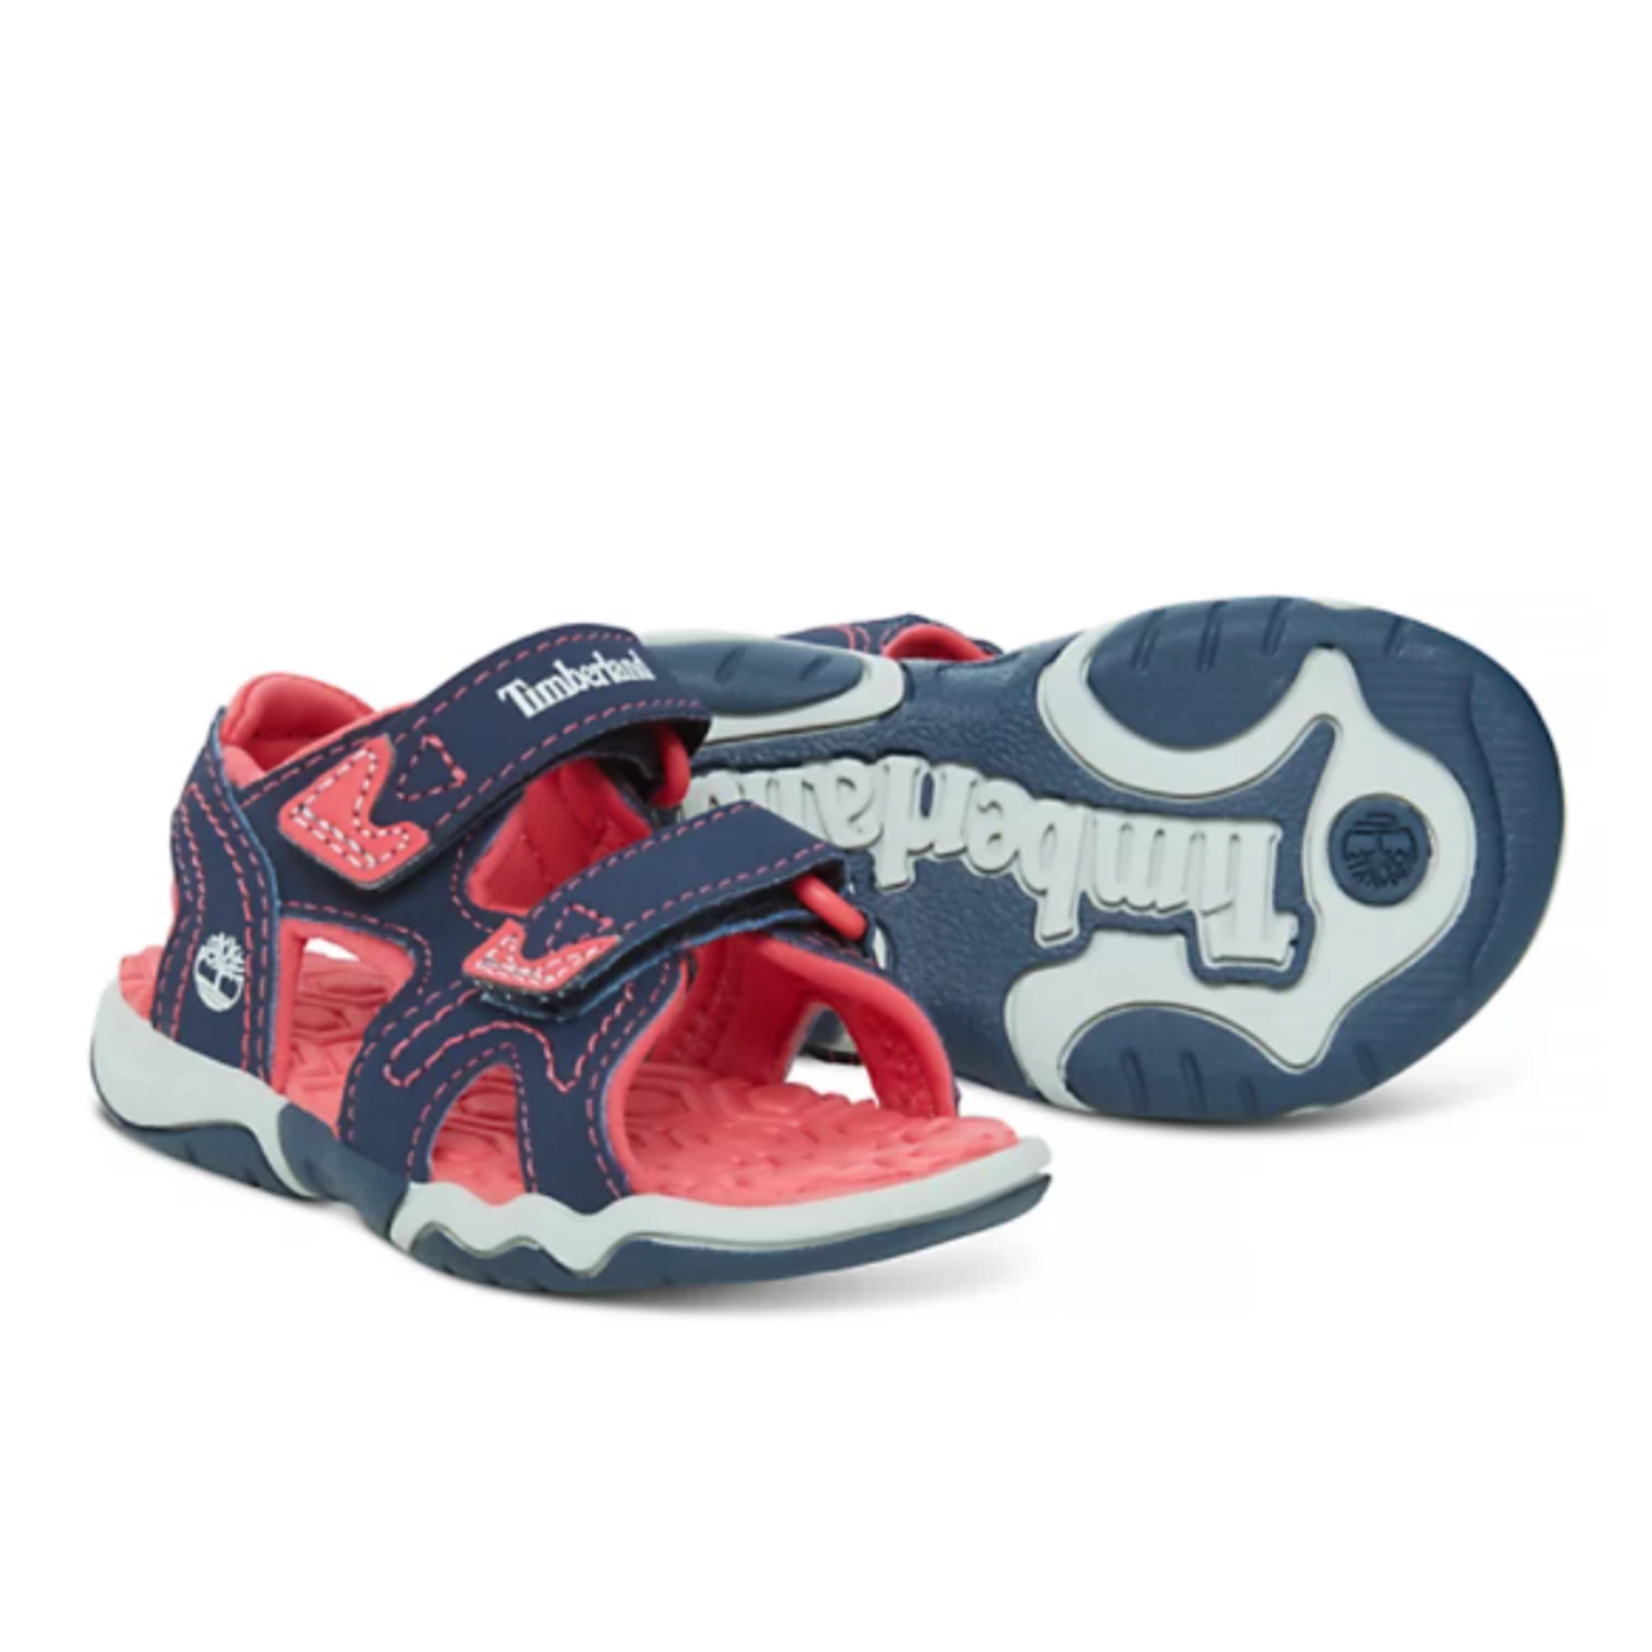 Timberland ADVENTURE SEEKER 2-STRAP SANDAL FOR TODDLER IN NAVY/PINK